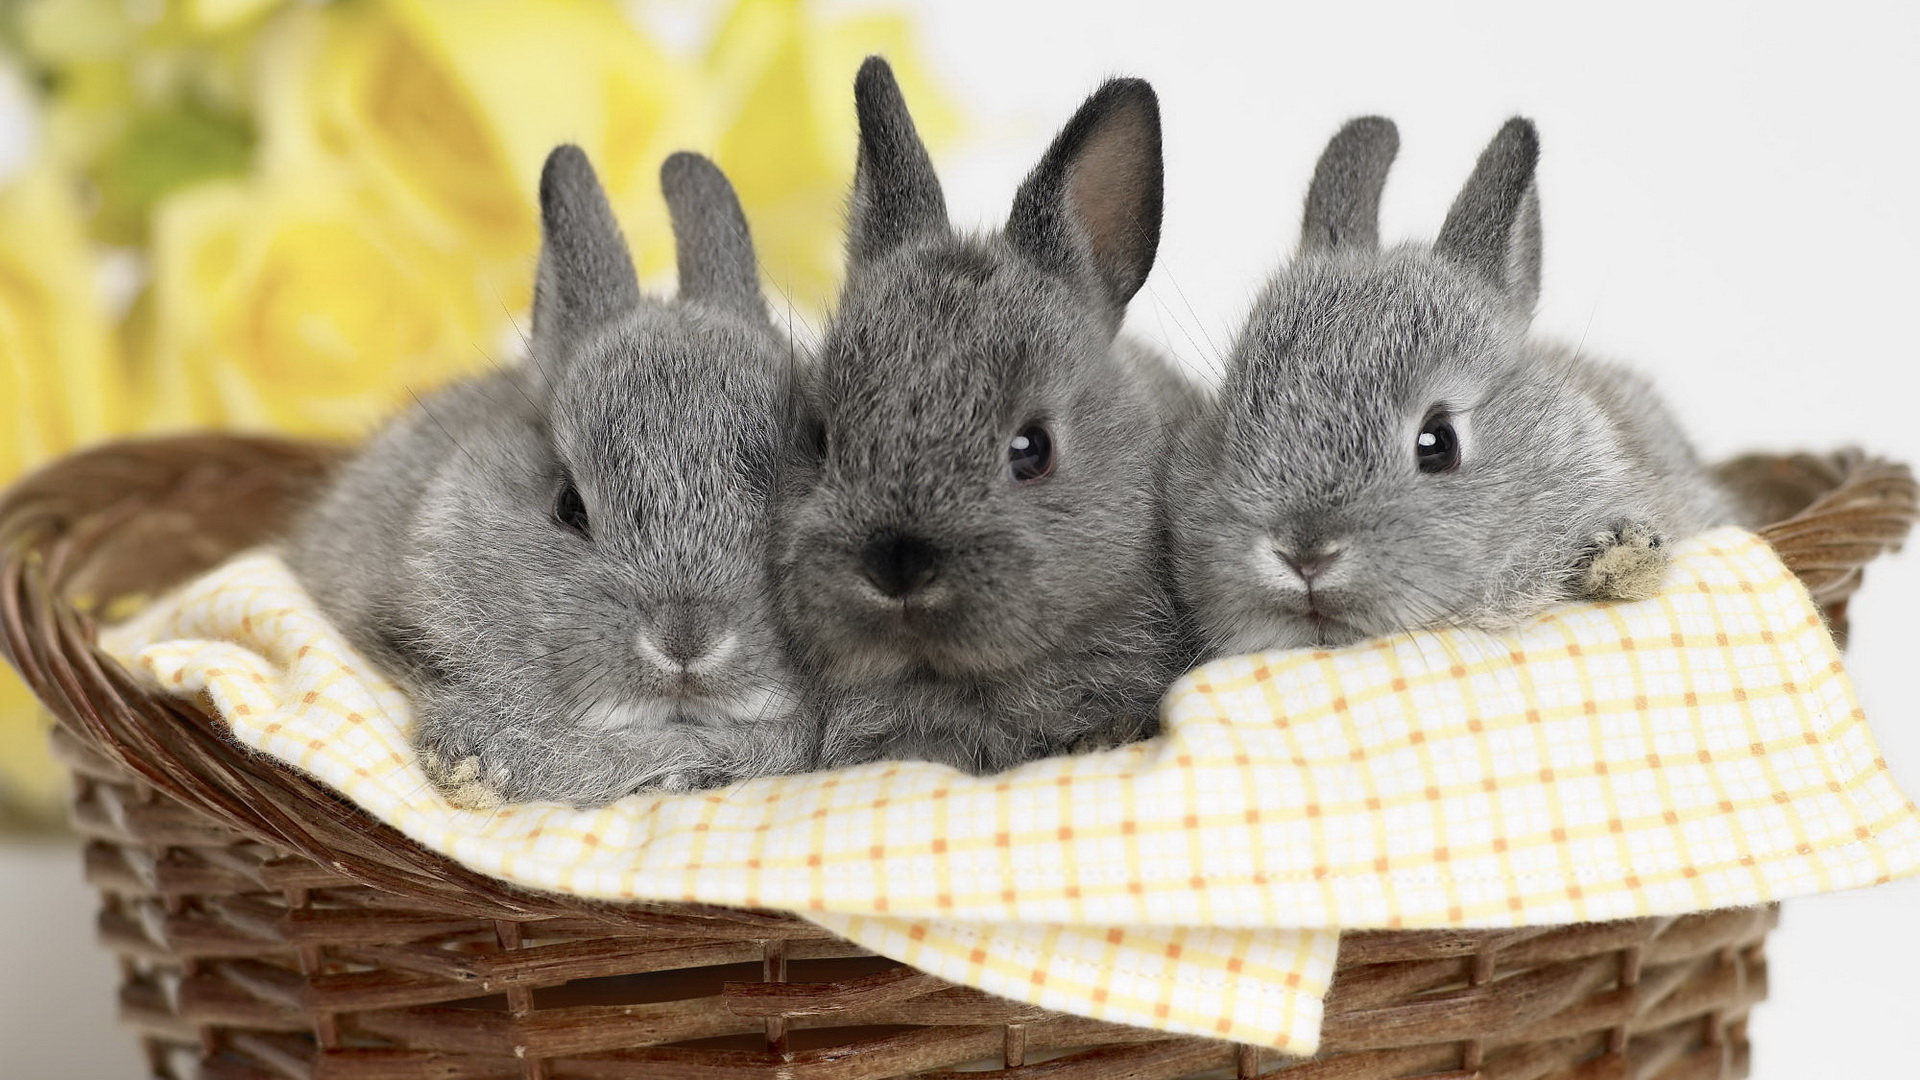 click to free download the wallpaper--Free Download Cute Animals Picture - Three Rabbits in a Small Basket, Innocent Facial Expression, Cuties! 1920X1080 free wallpaper download